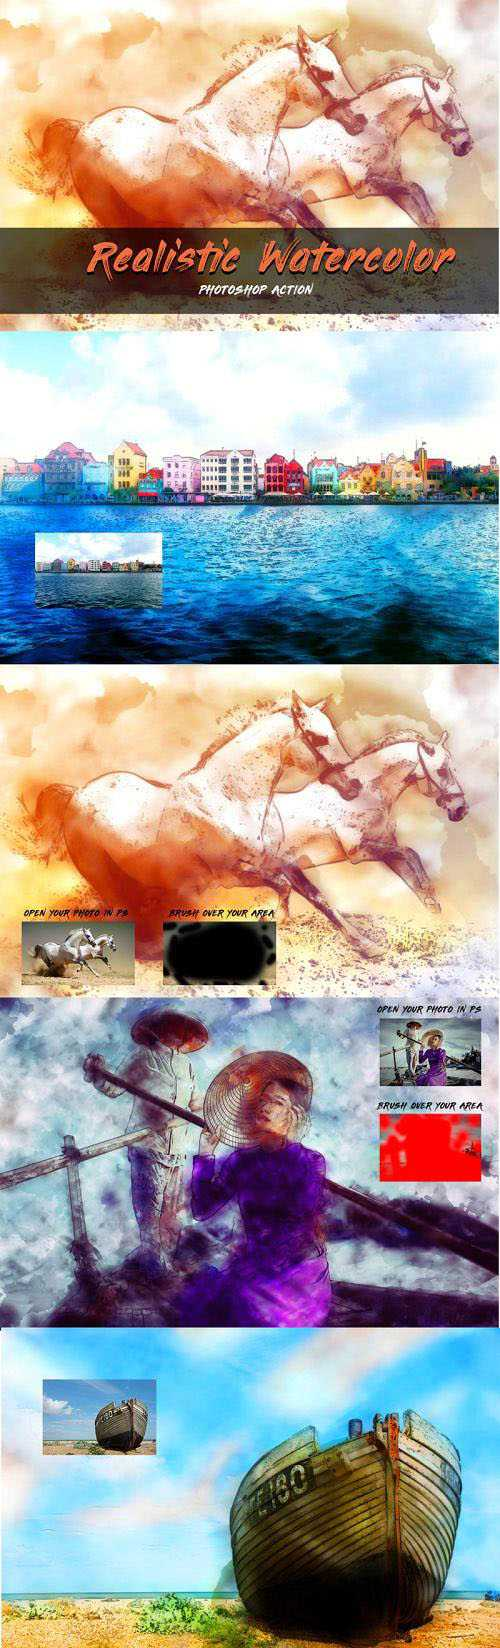 Realistic Watercolor Photoshop Action – 3530665